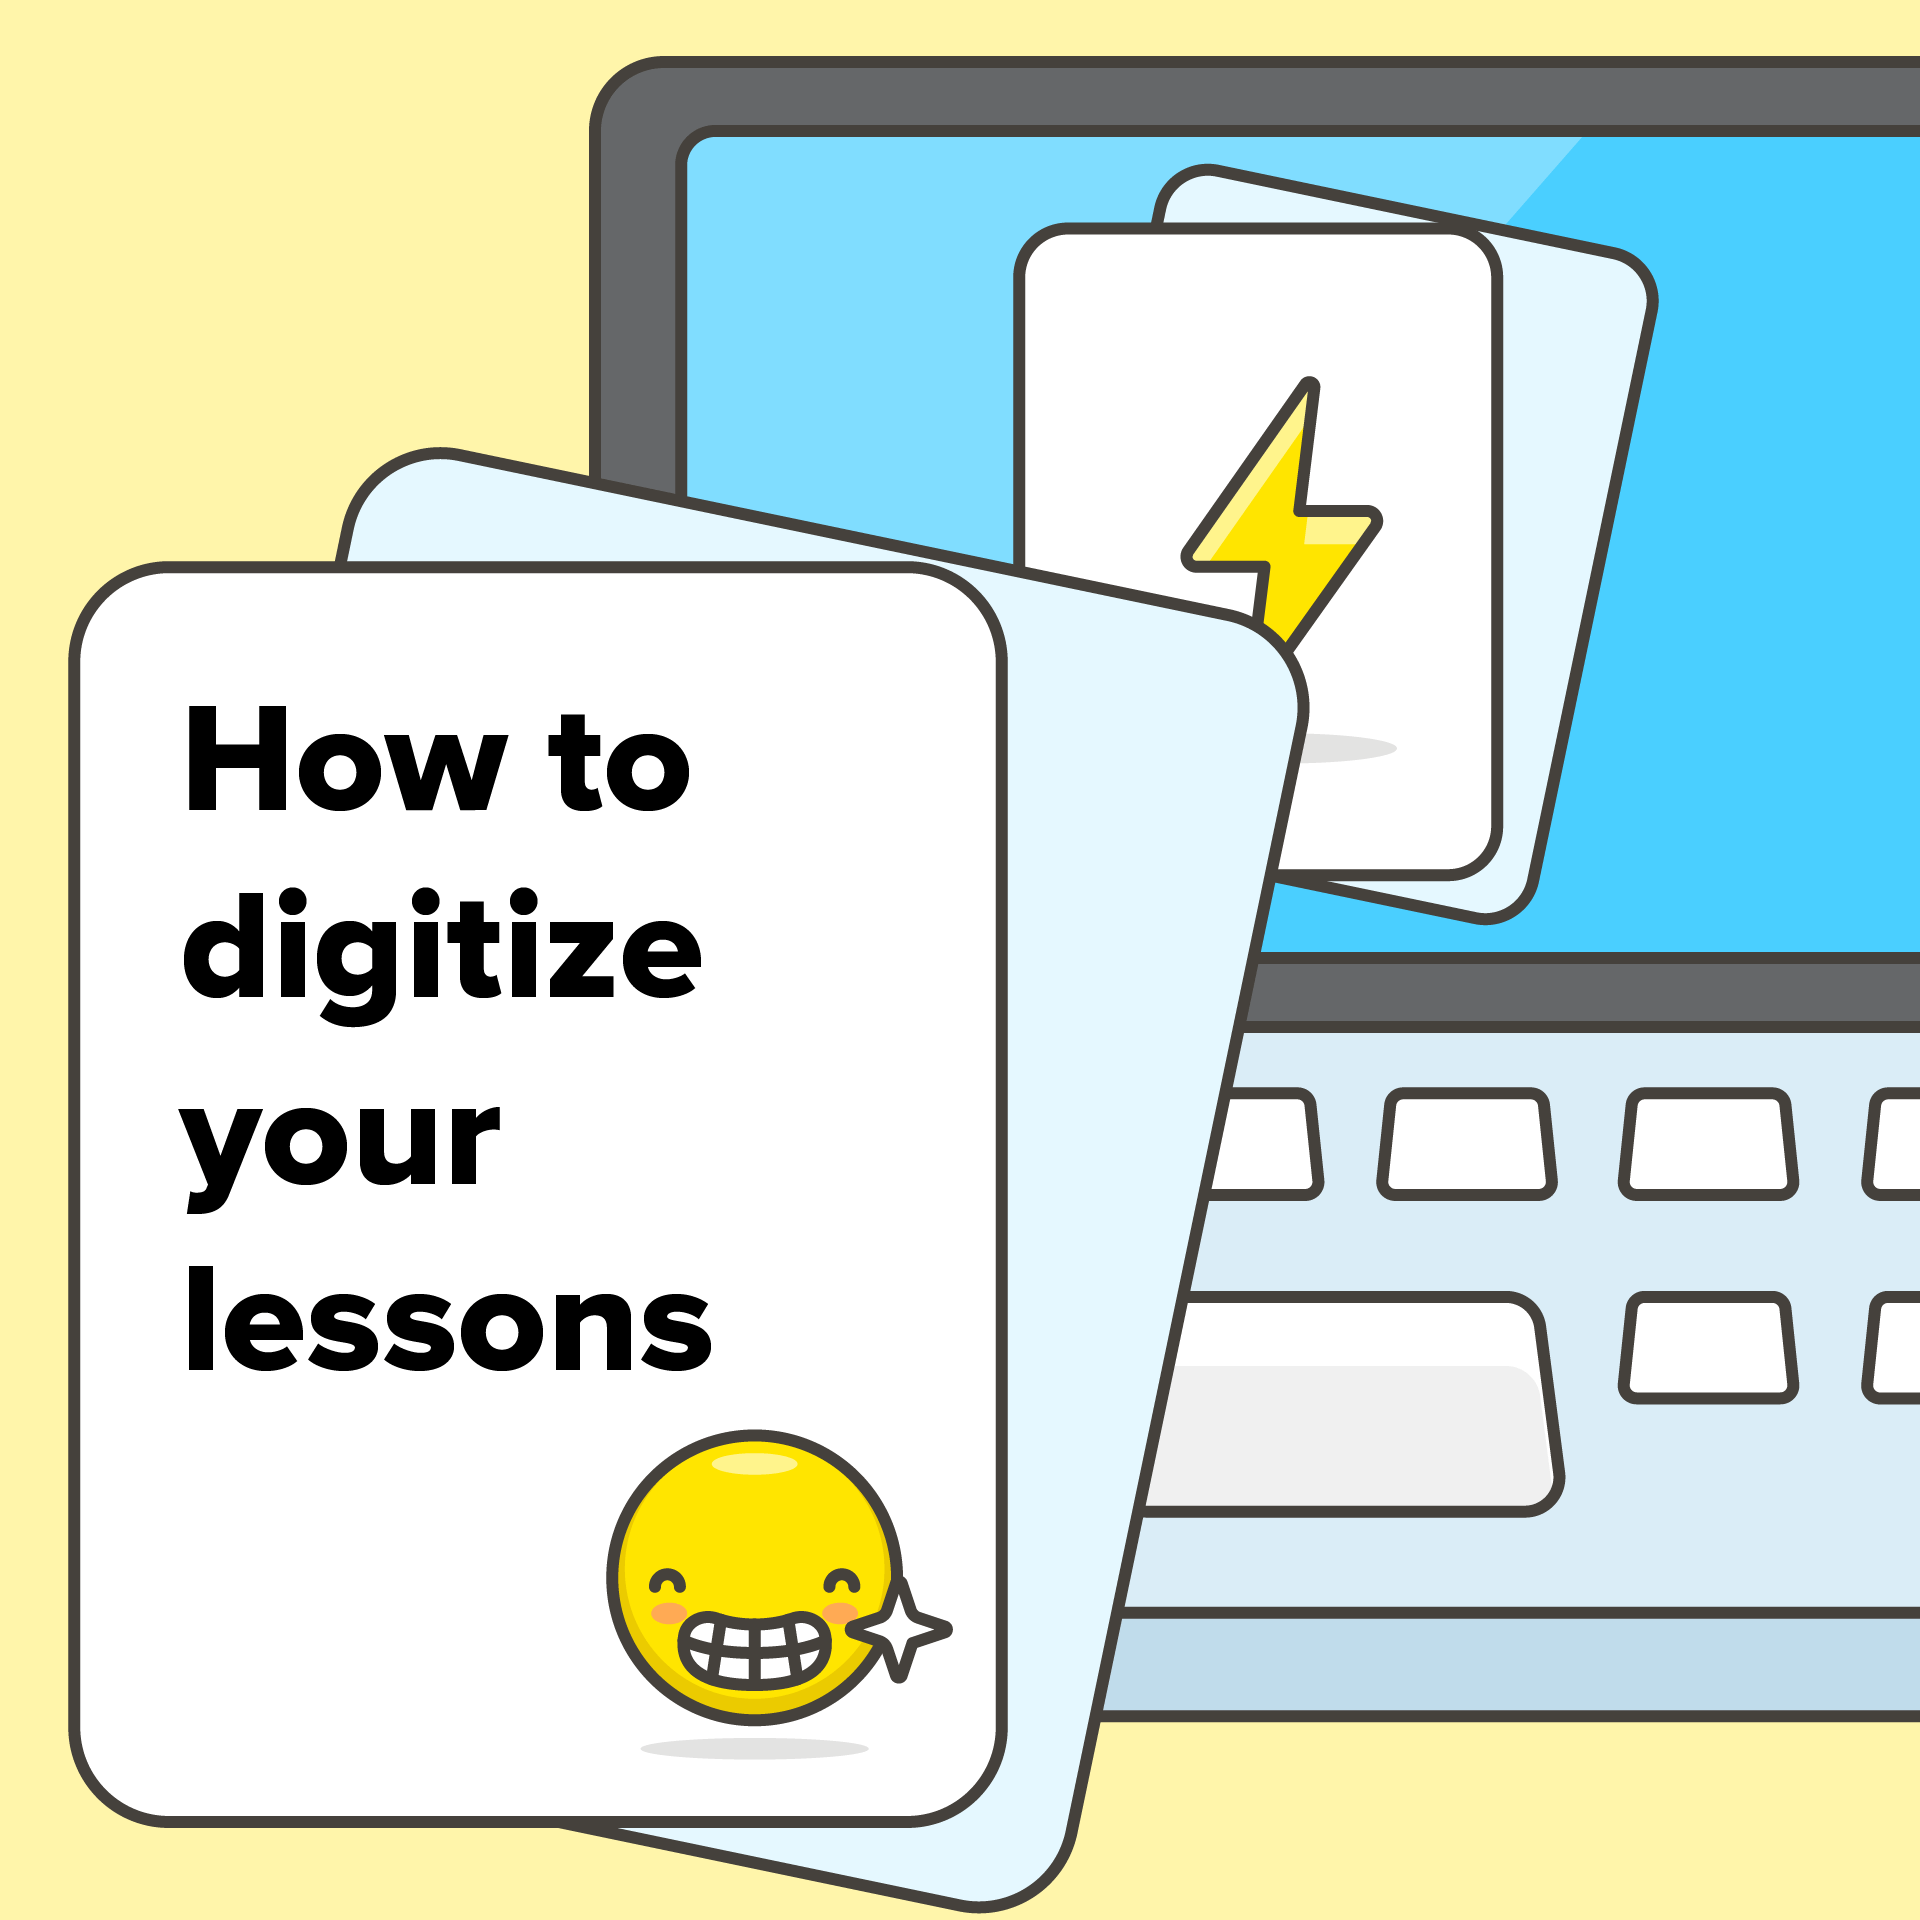 how-to-digitize-your-lessons-01